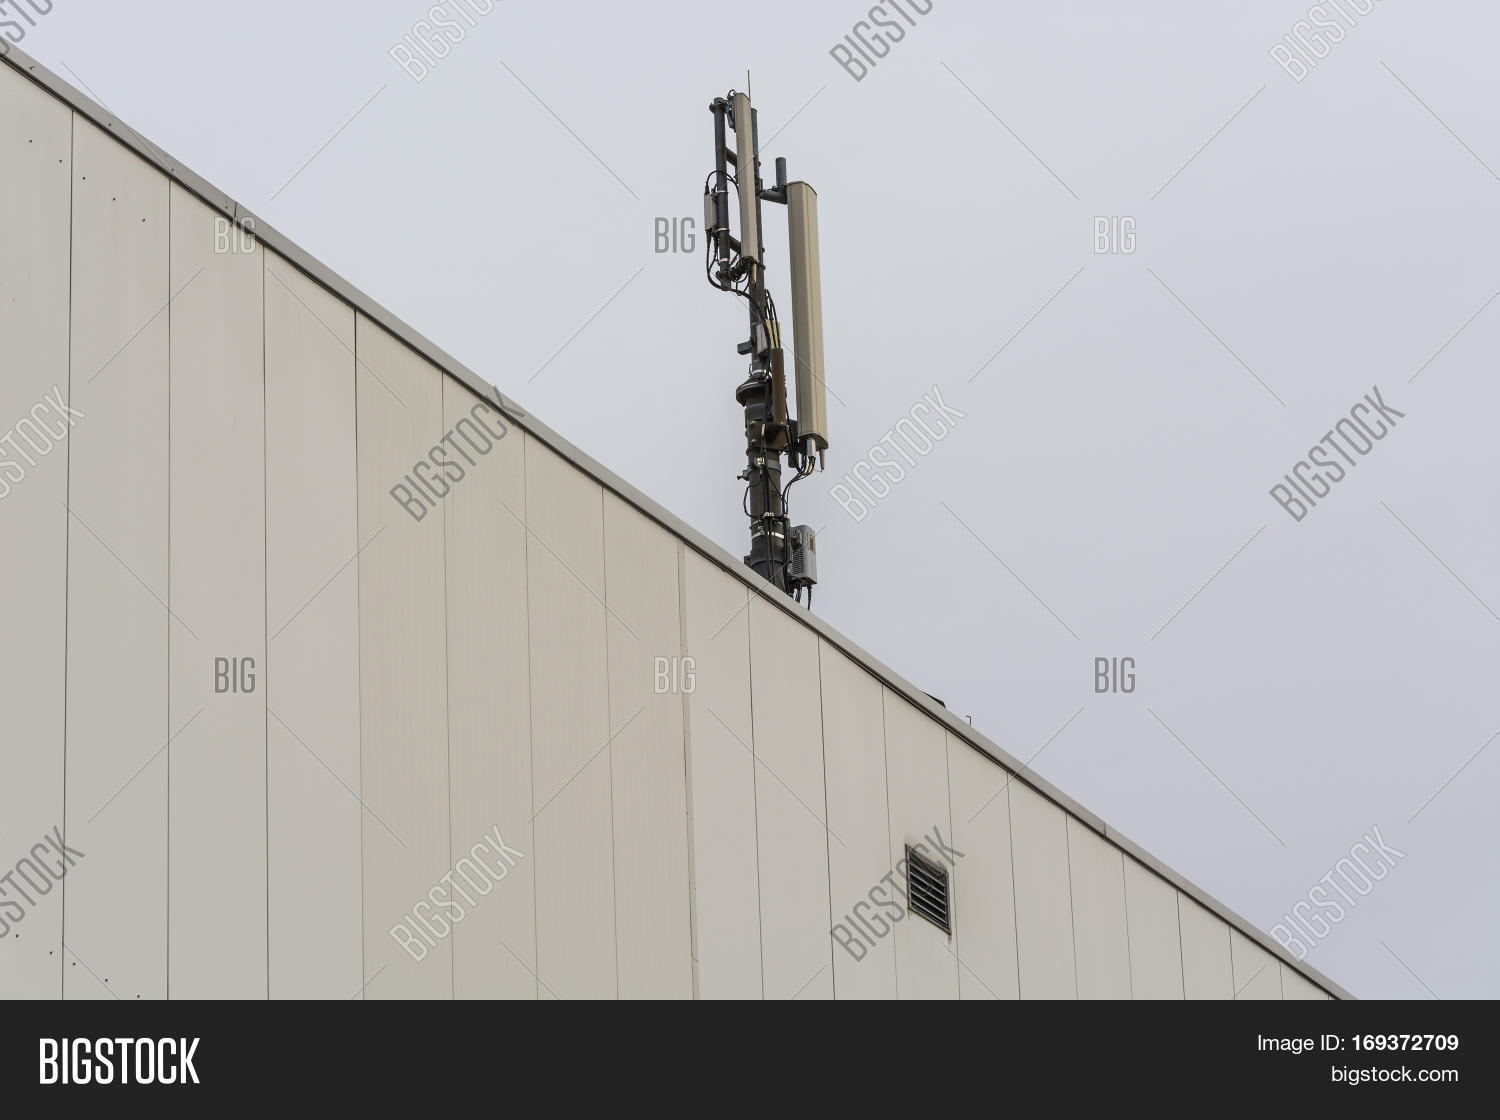 Unusual Wireless Telecommunication Towers Gallery - Everything You ...